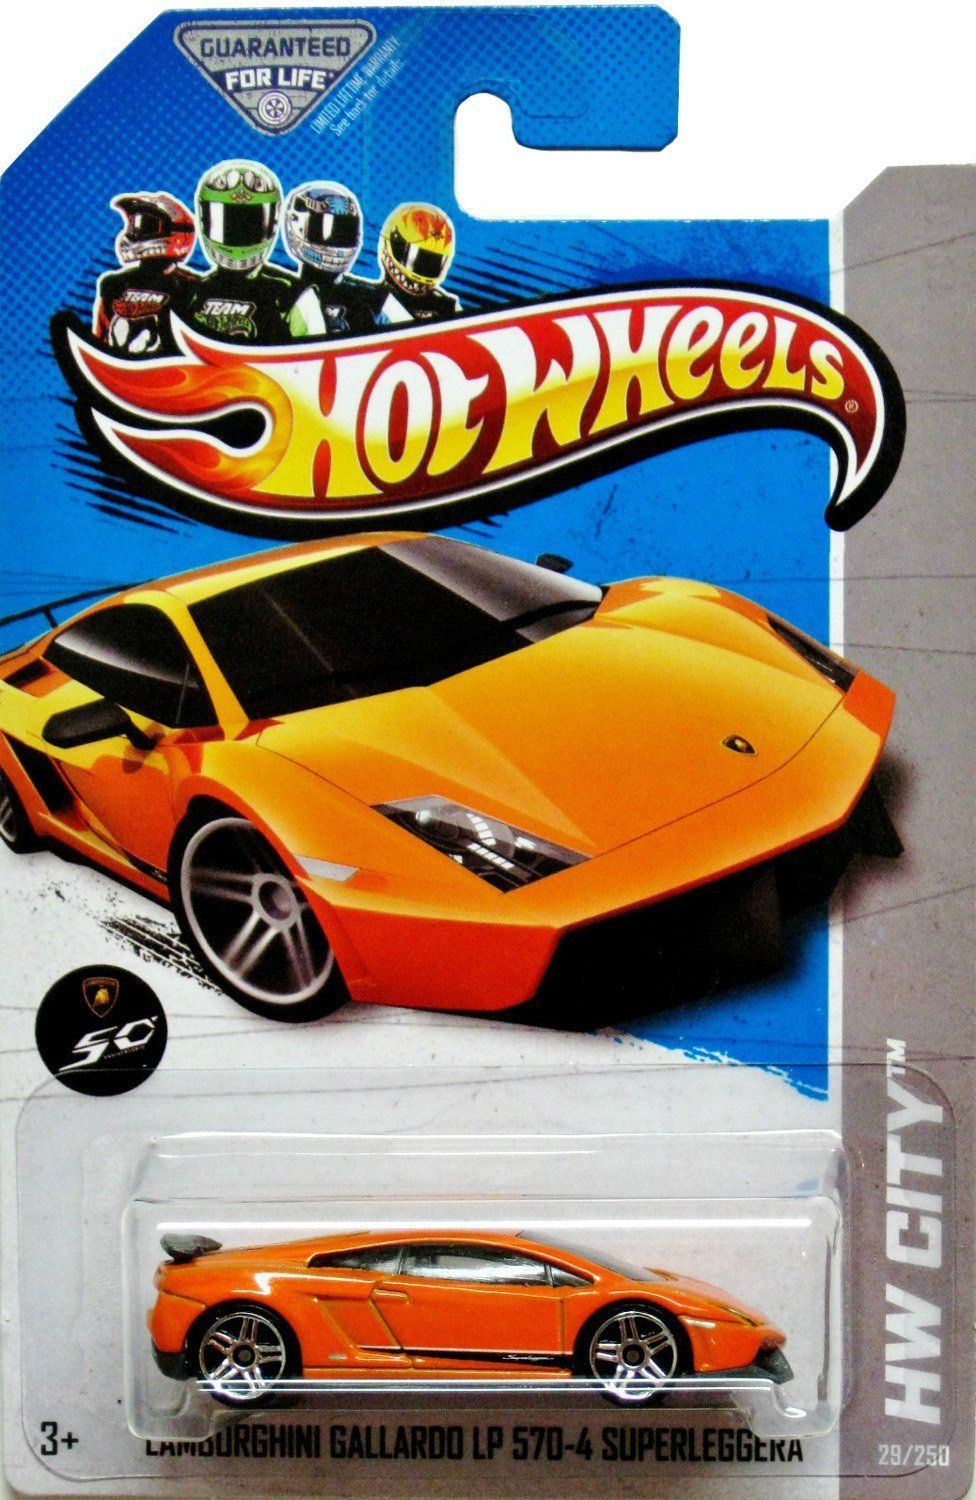 In his stocking? Hot Wheels